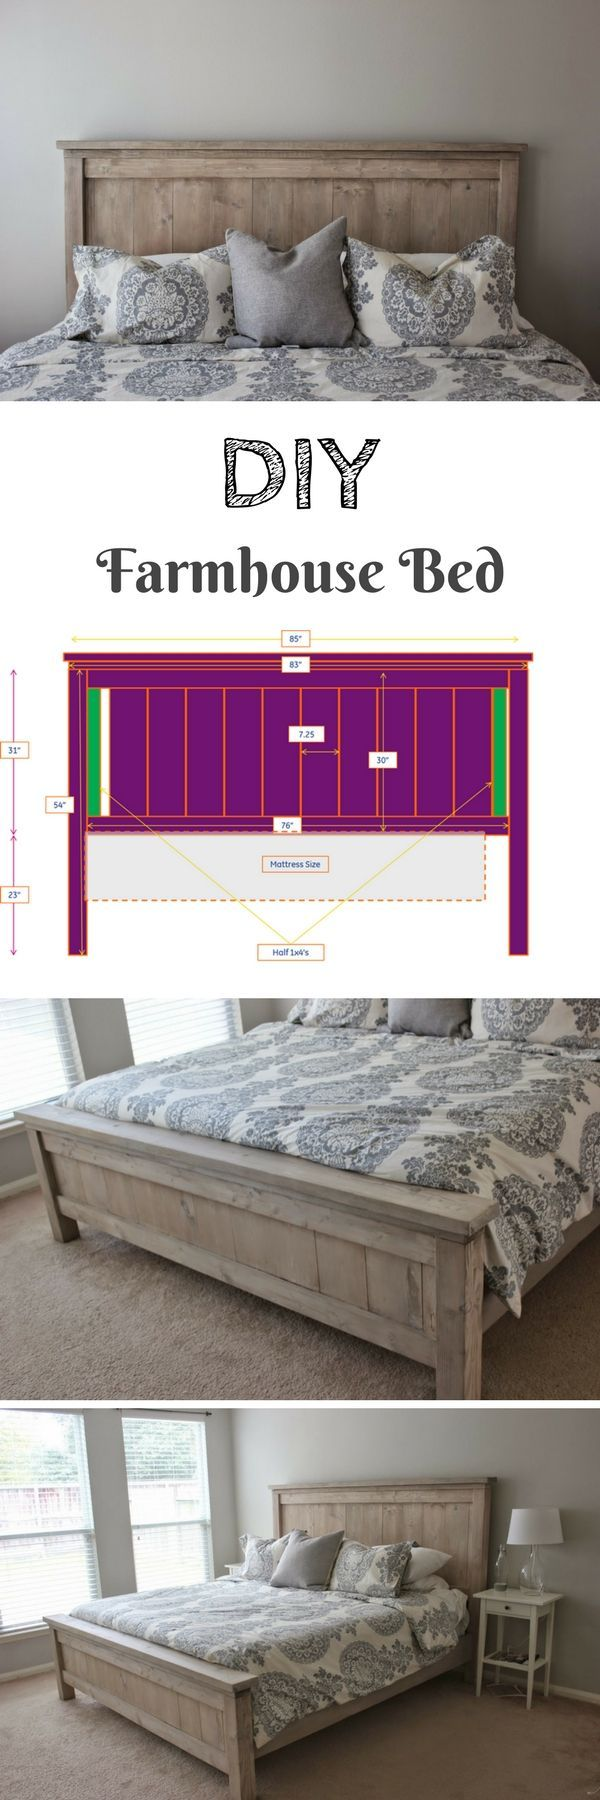 20 easy diy bed frame projects you can build on a budget